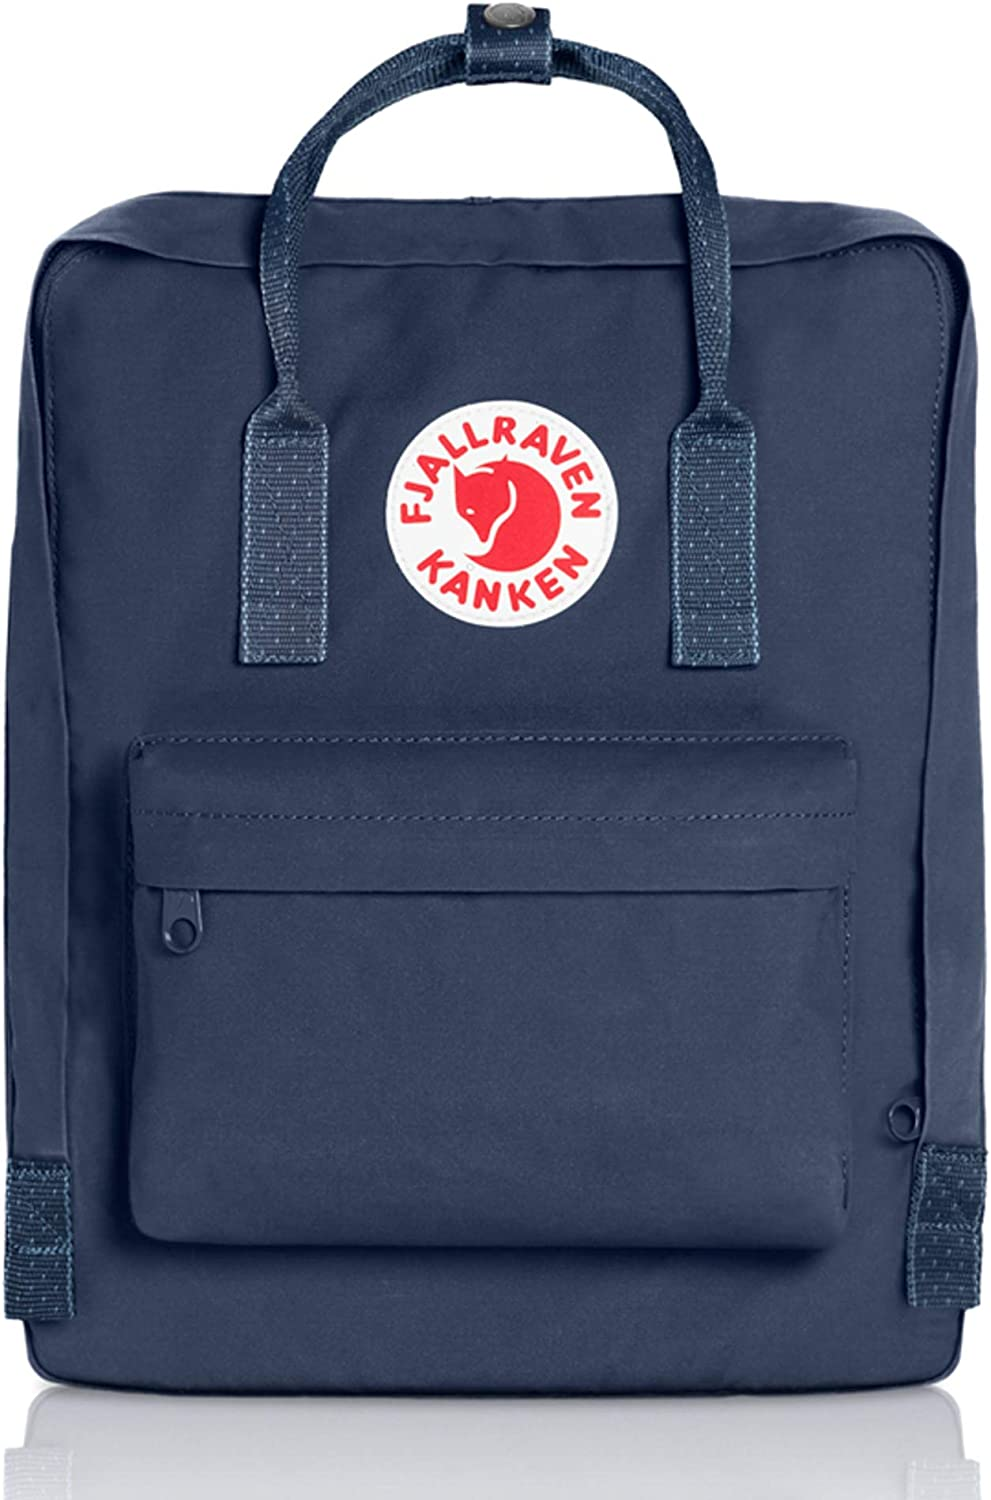 Fjallraven, Kanken Classic Backpack for Everyday